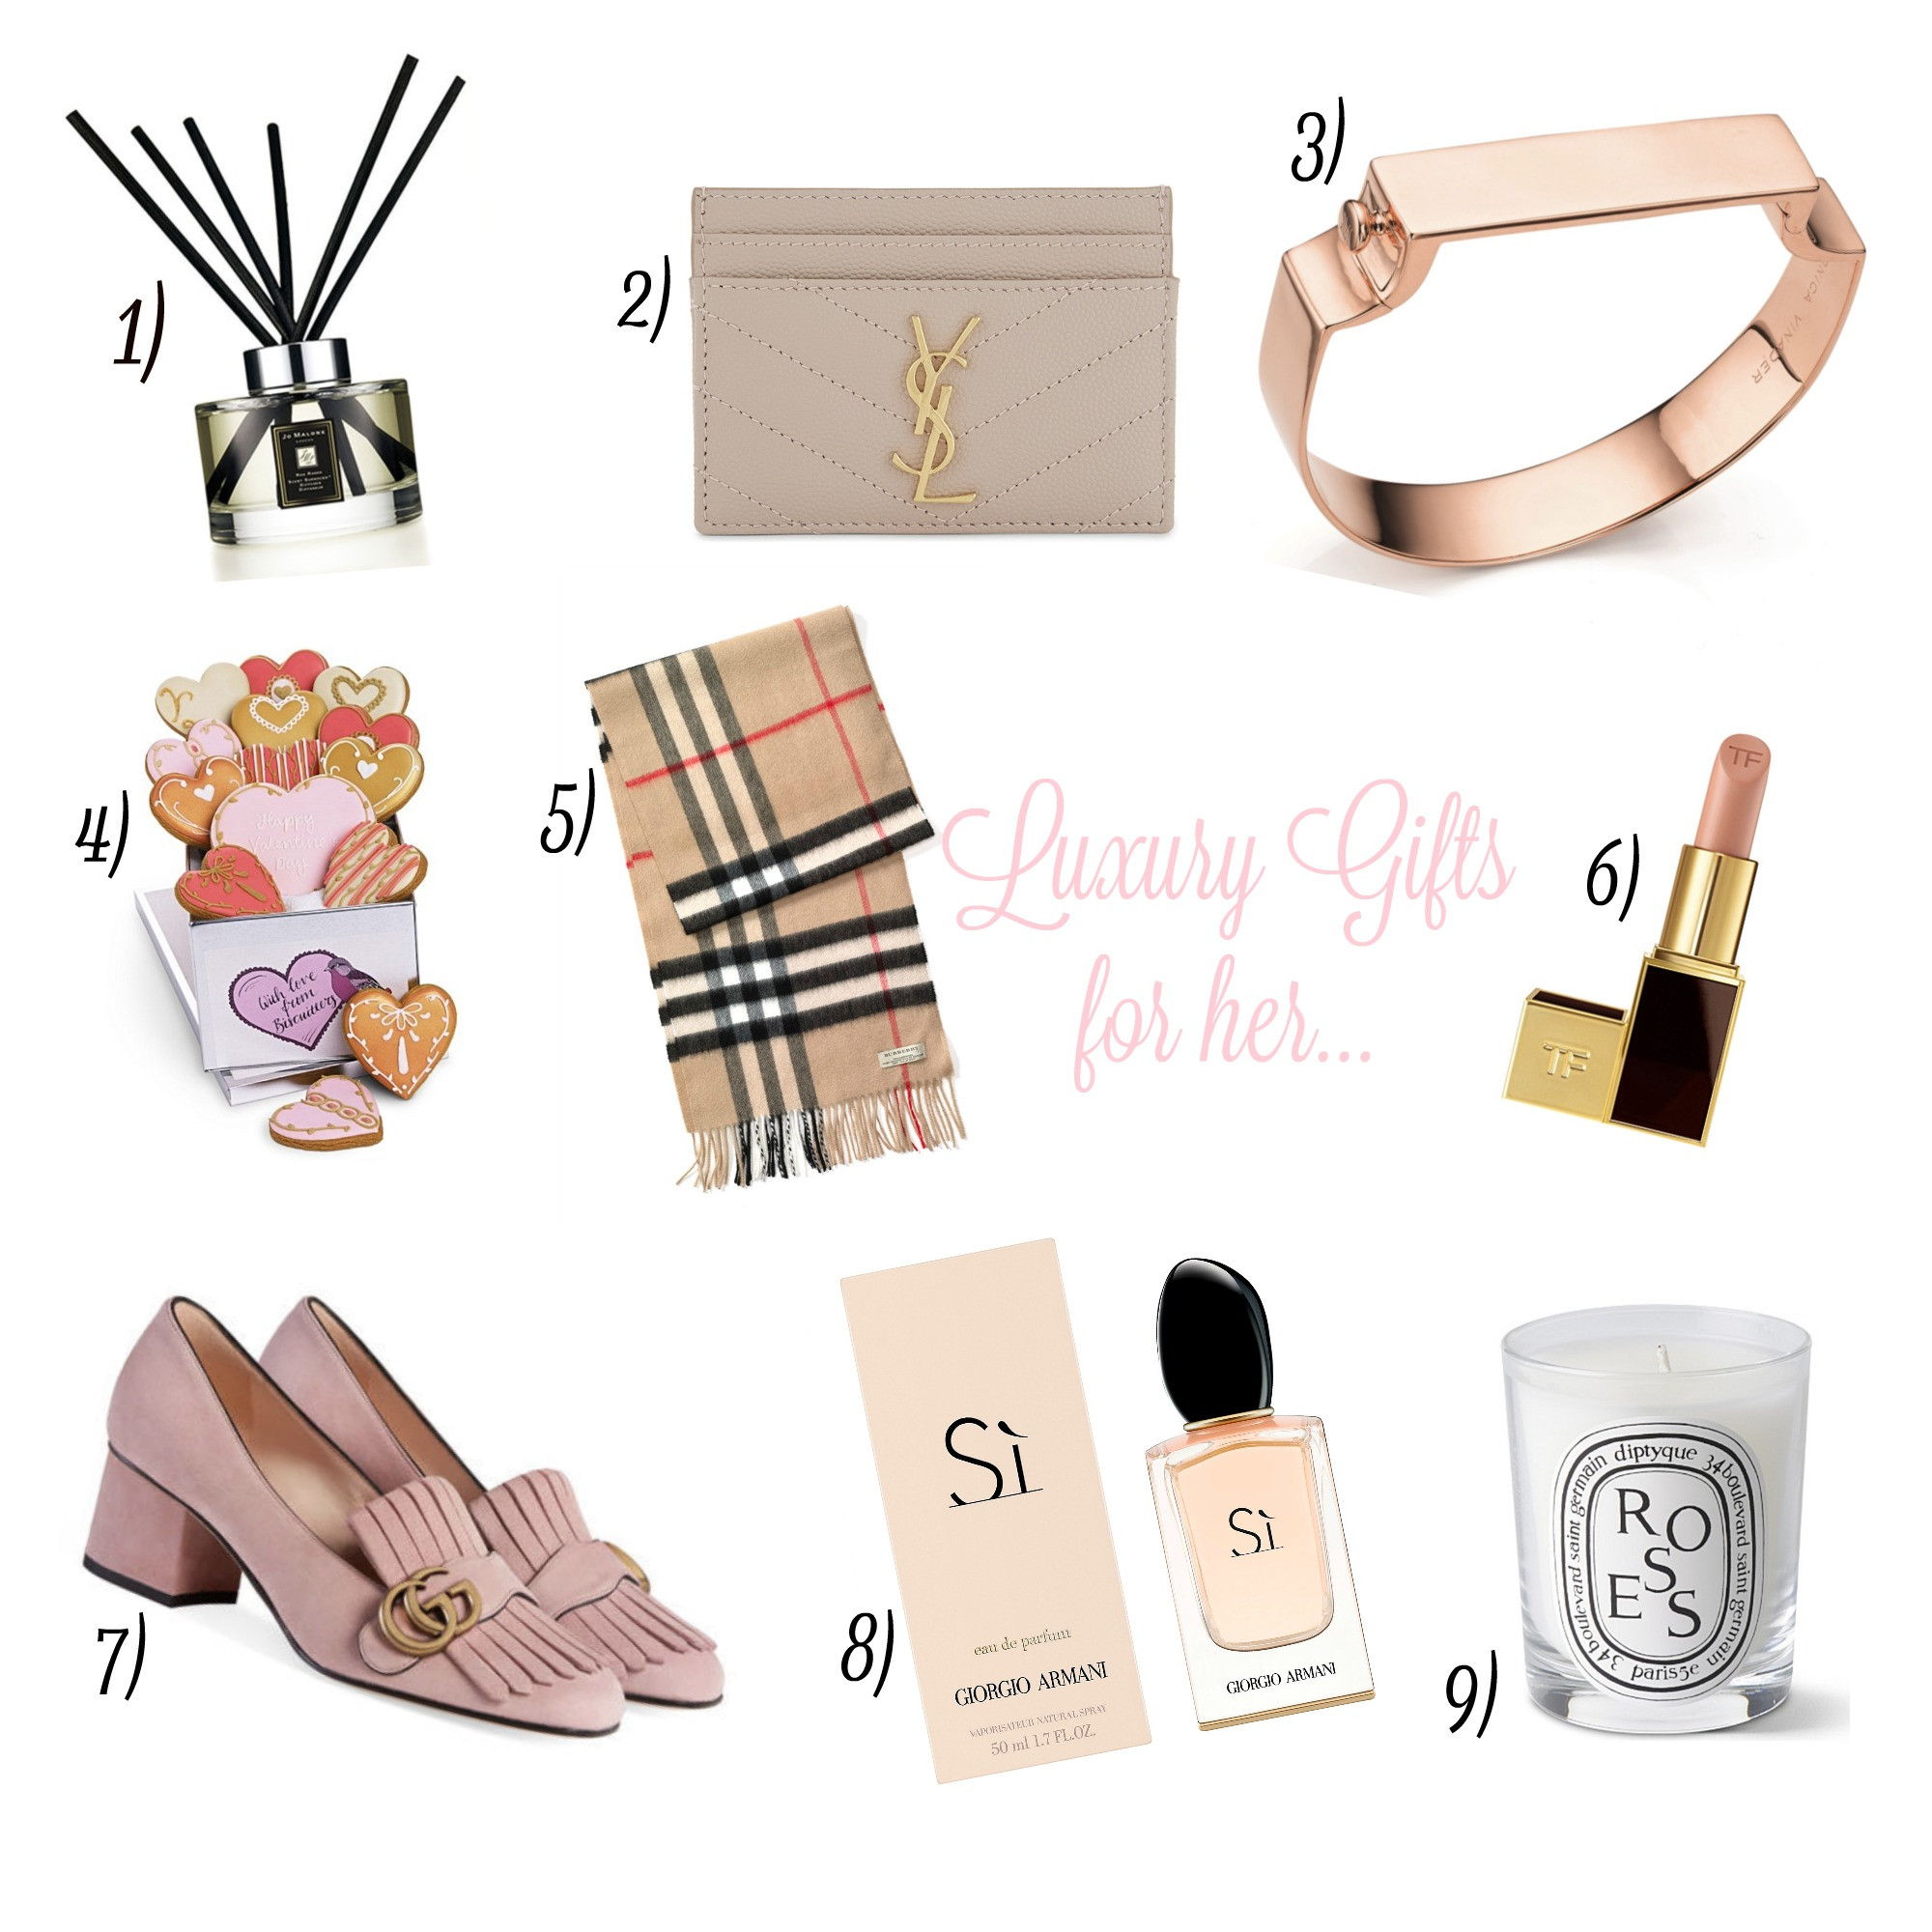 Best ideas about Luxury Gift Ideas For Her . Save or Pin Luxury Valentine s Gifts For Her Jordan s Beautiful Life Now.